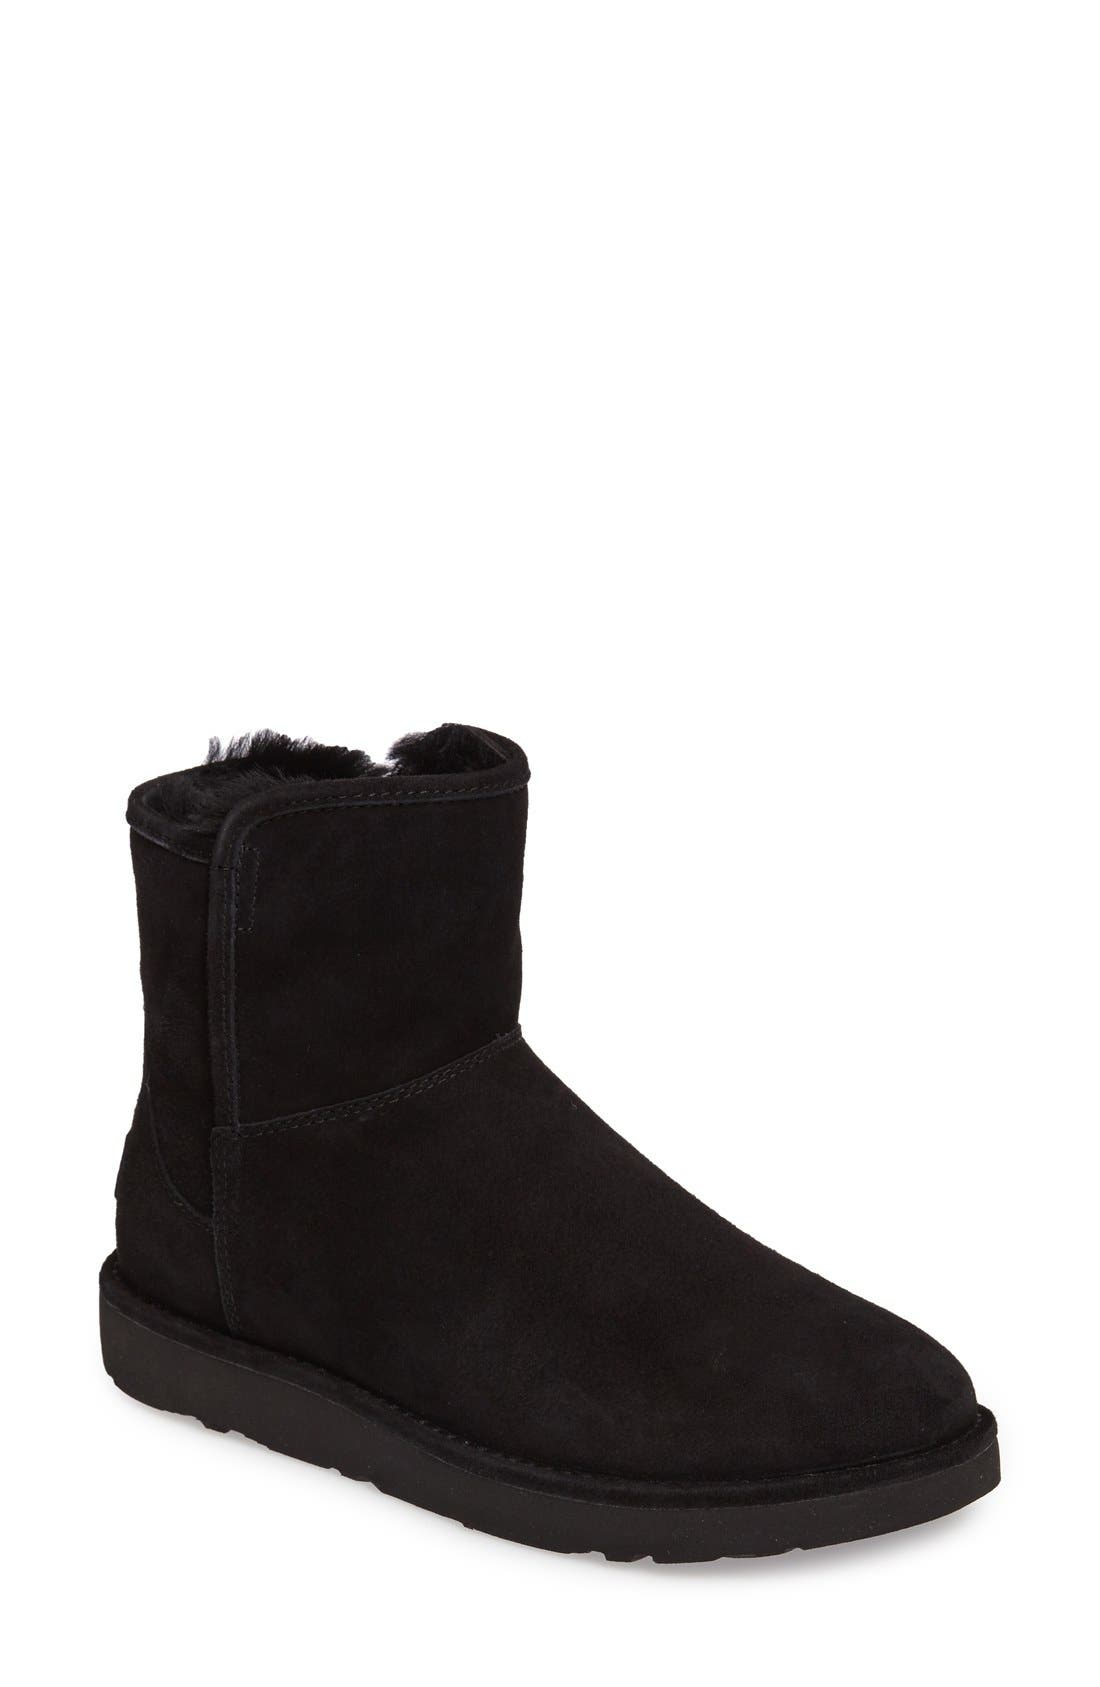 Abree II Mini Boot,                         Main,                         color, NERO SUEDE